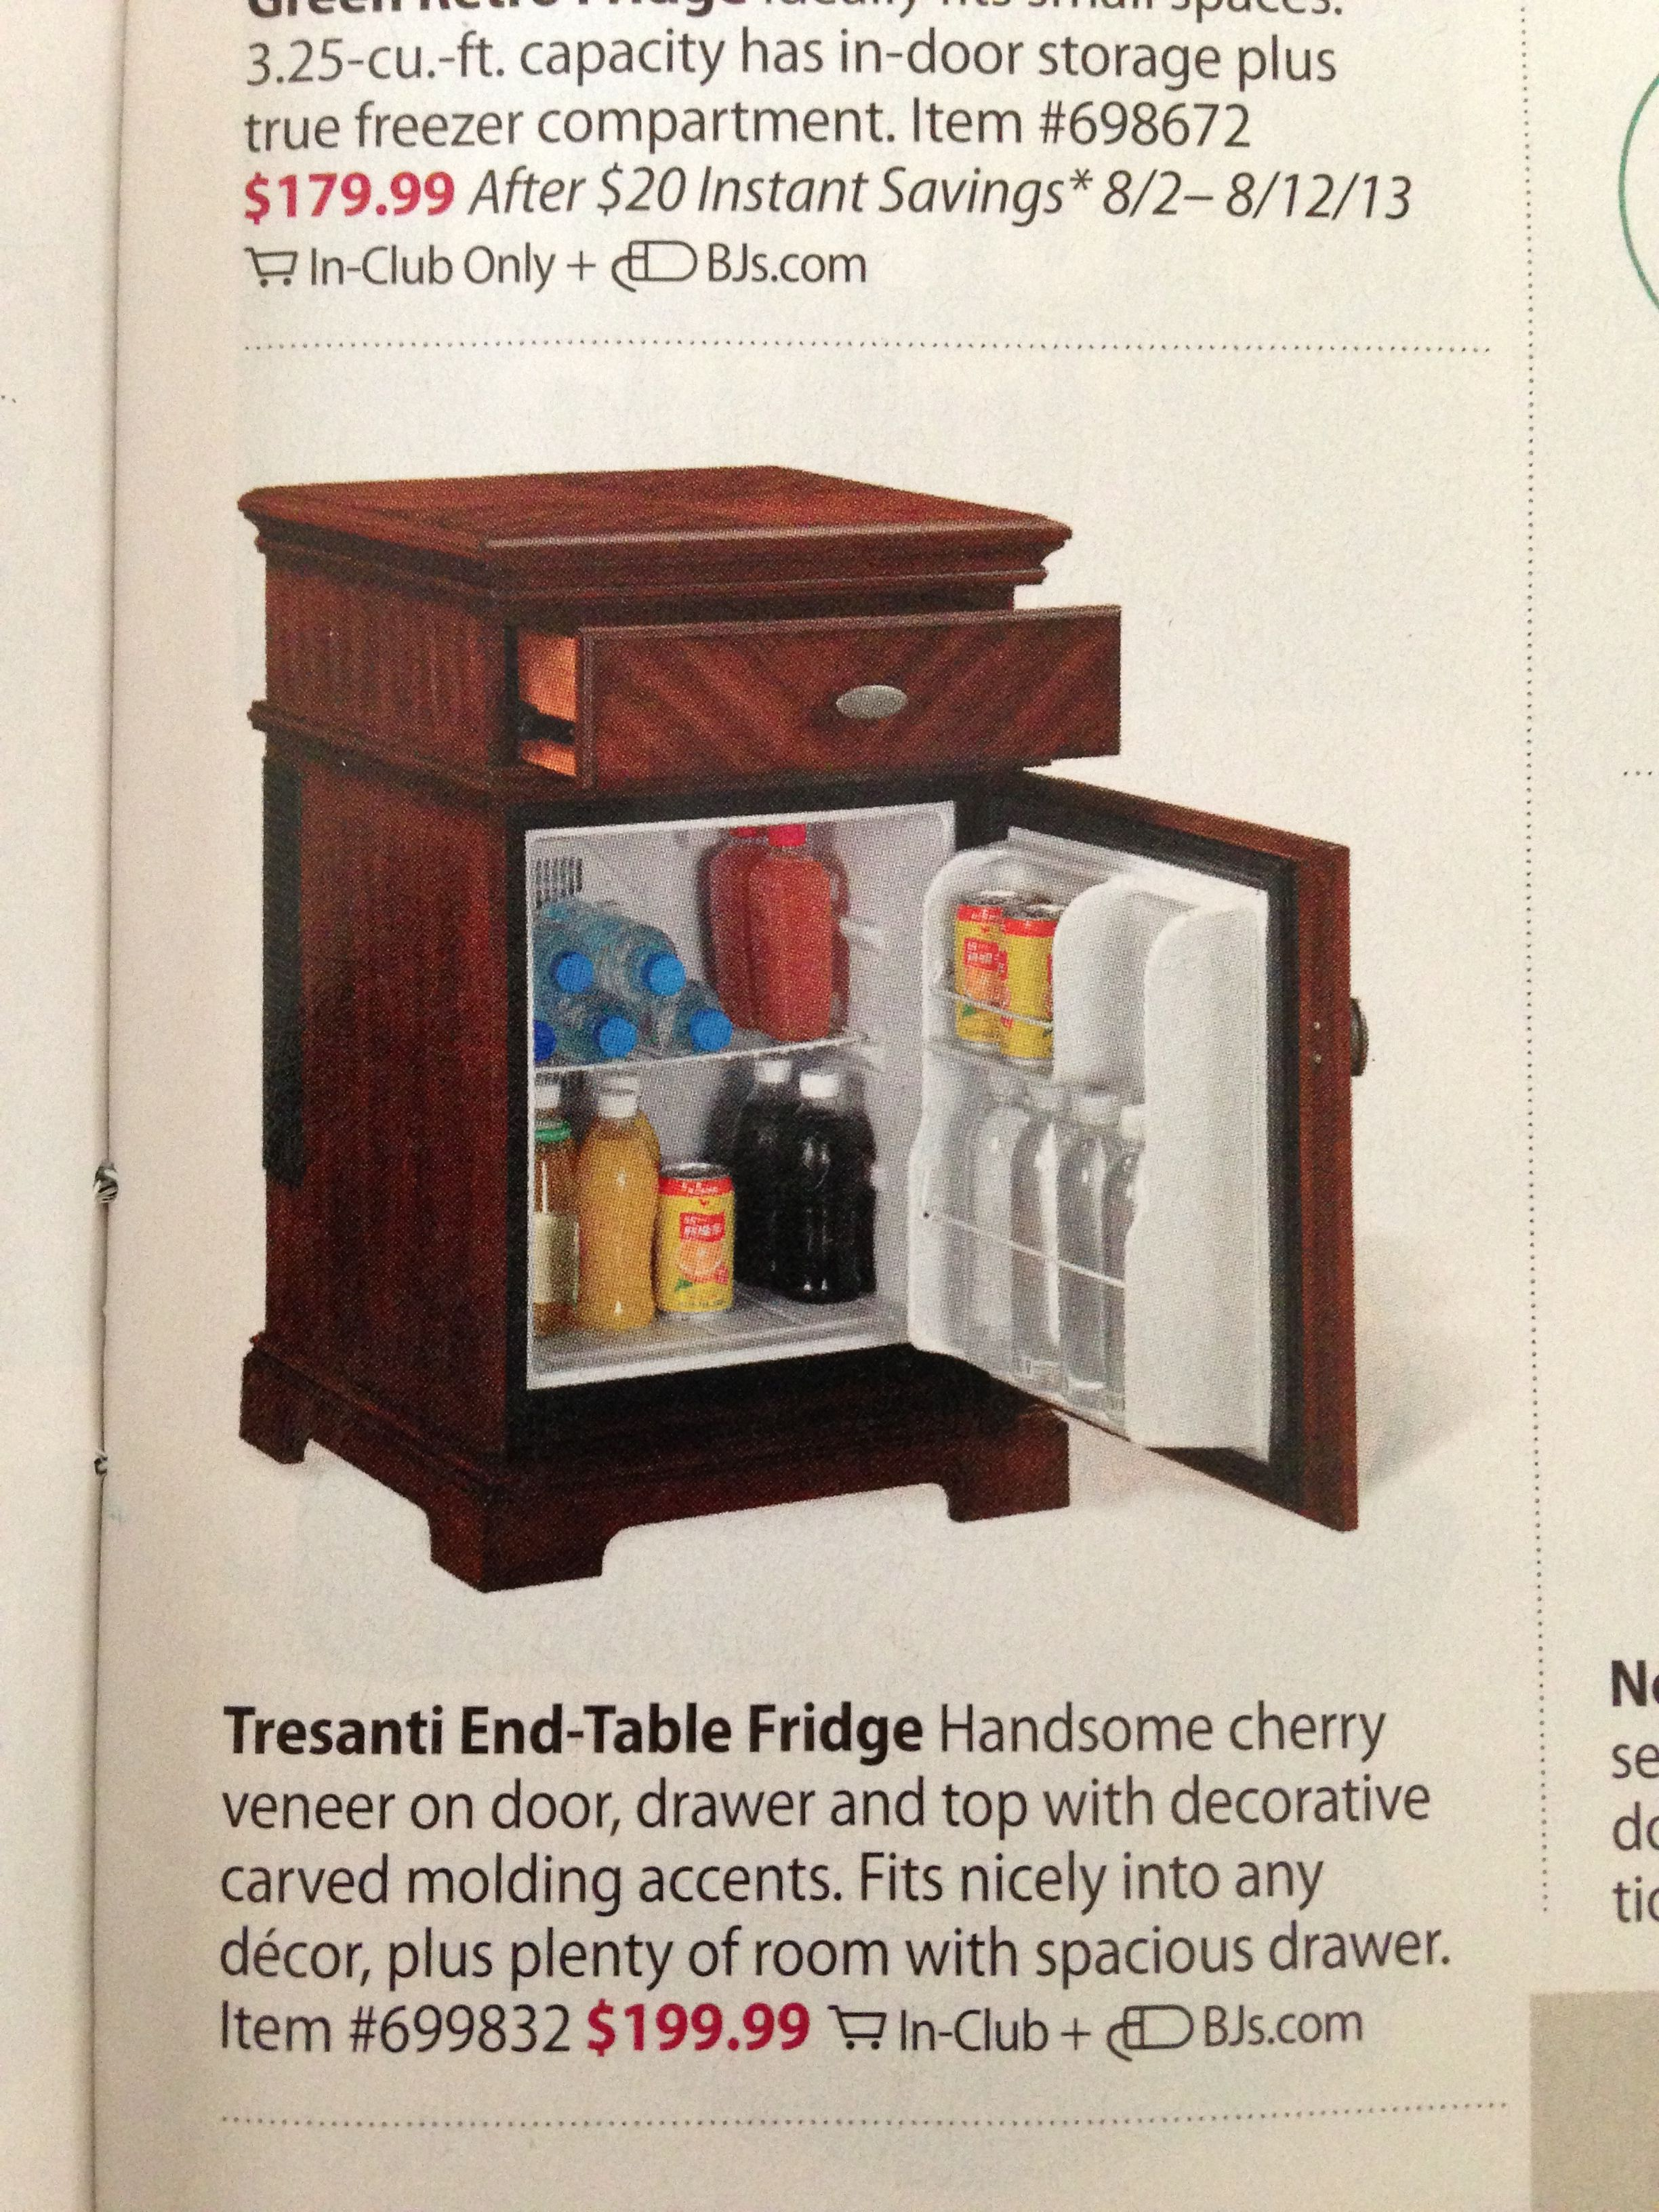 This would be great for anyone whose kitchen is far from their bedroom